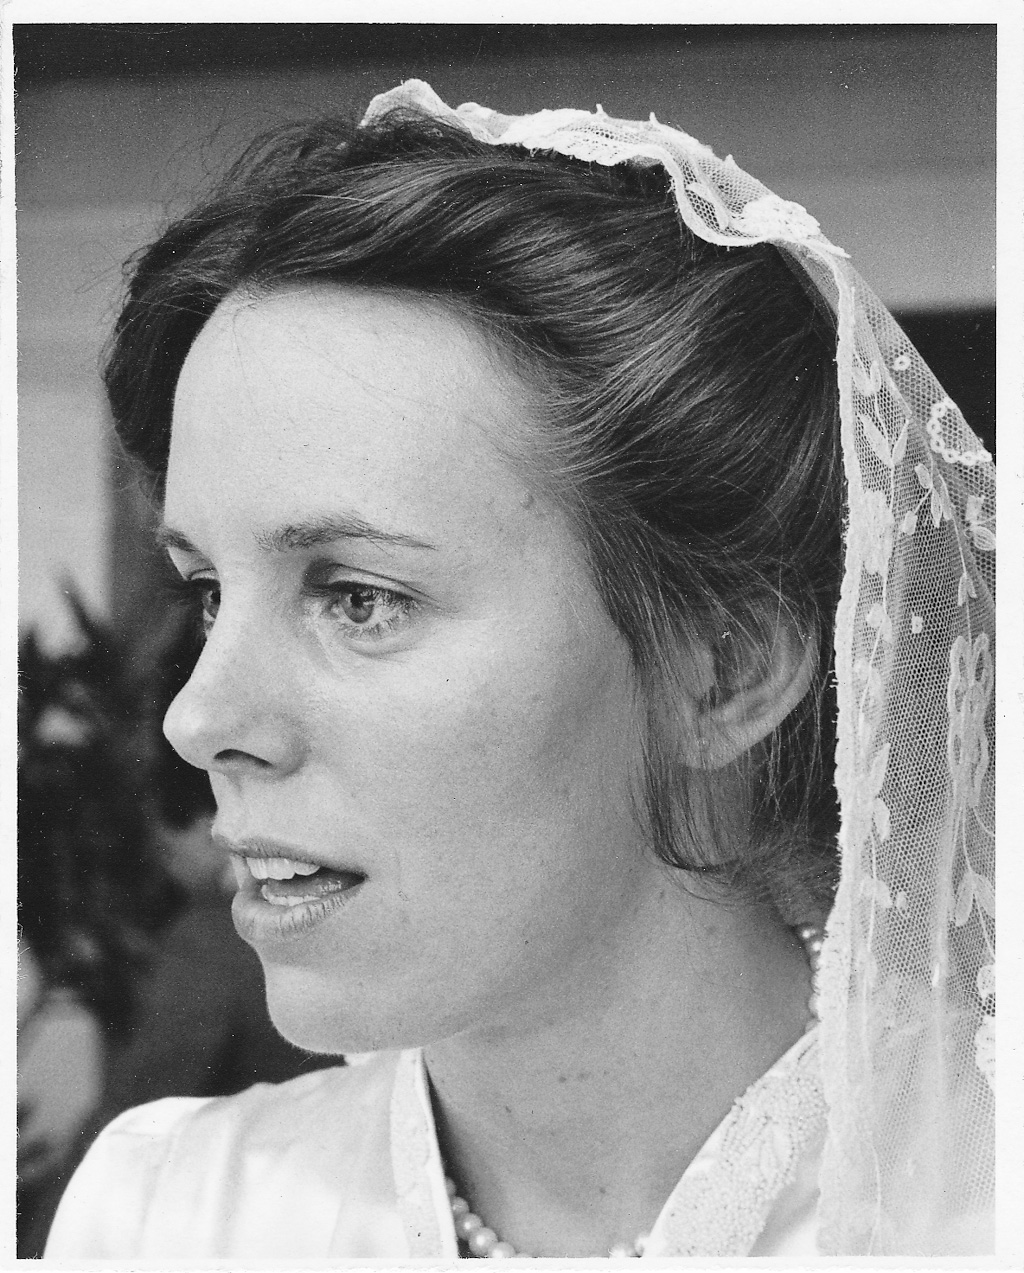 1970s Wedding Photograph of Bride Josephine Havlak